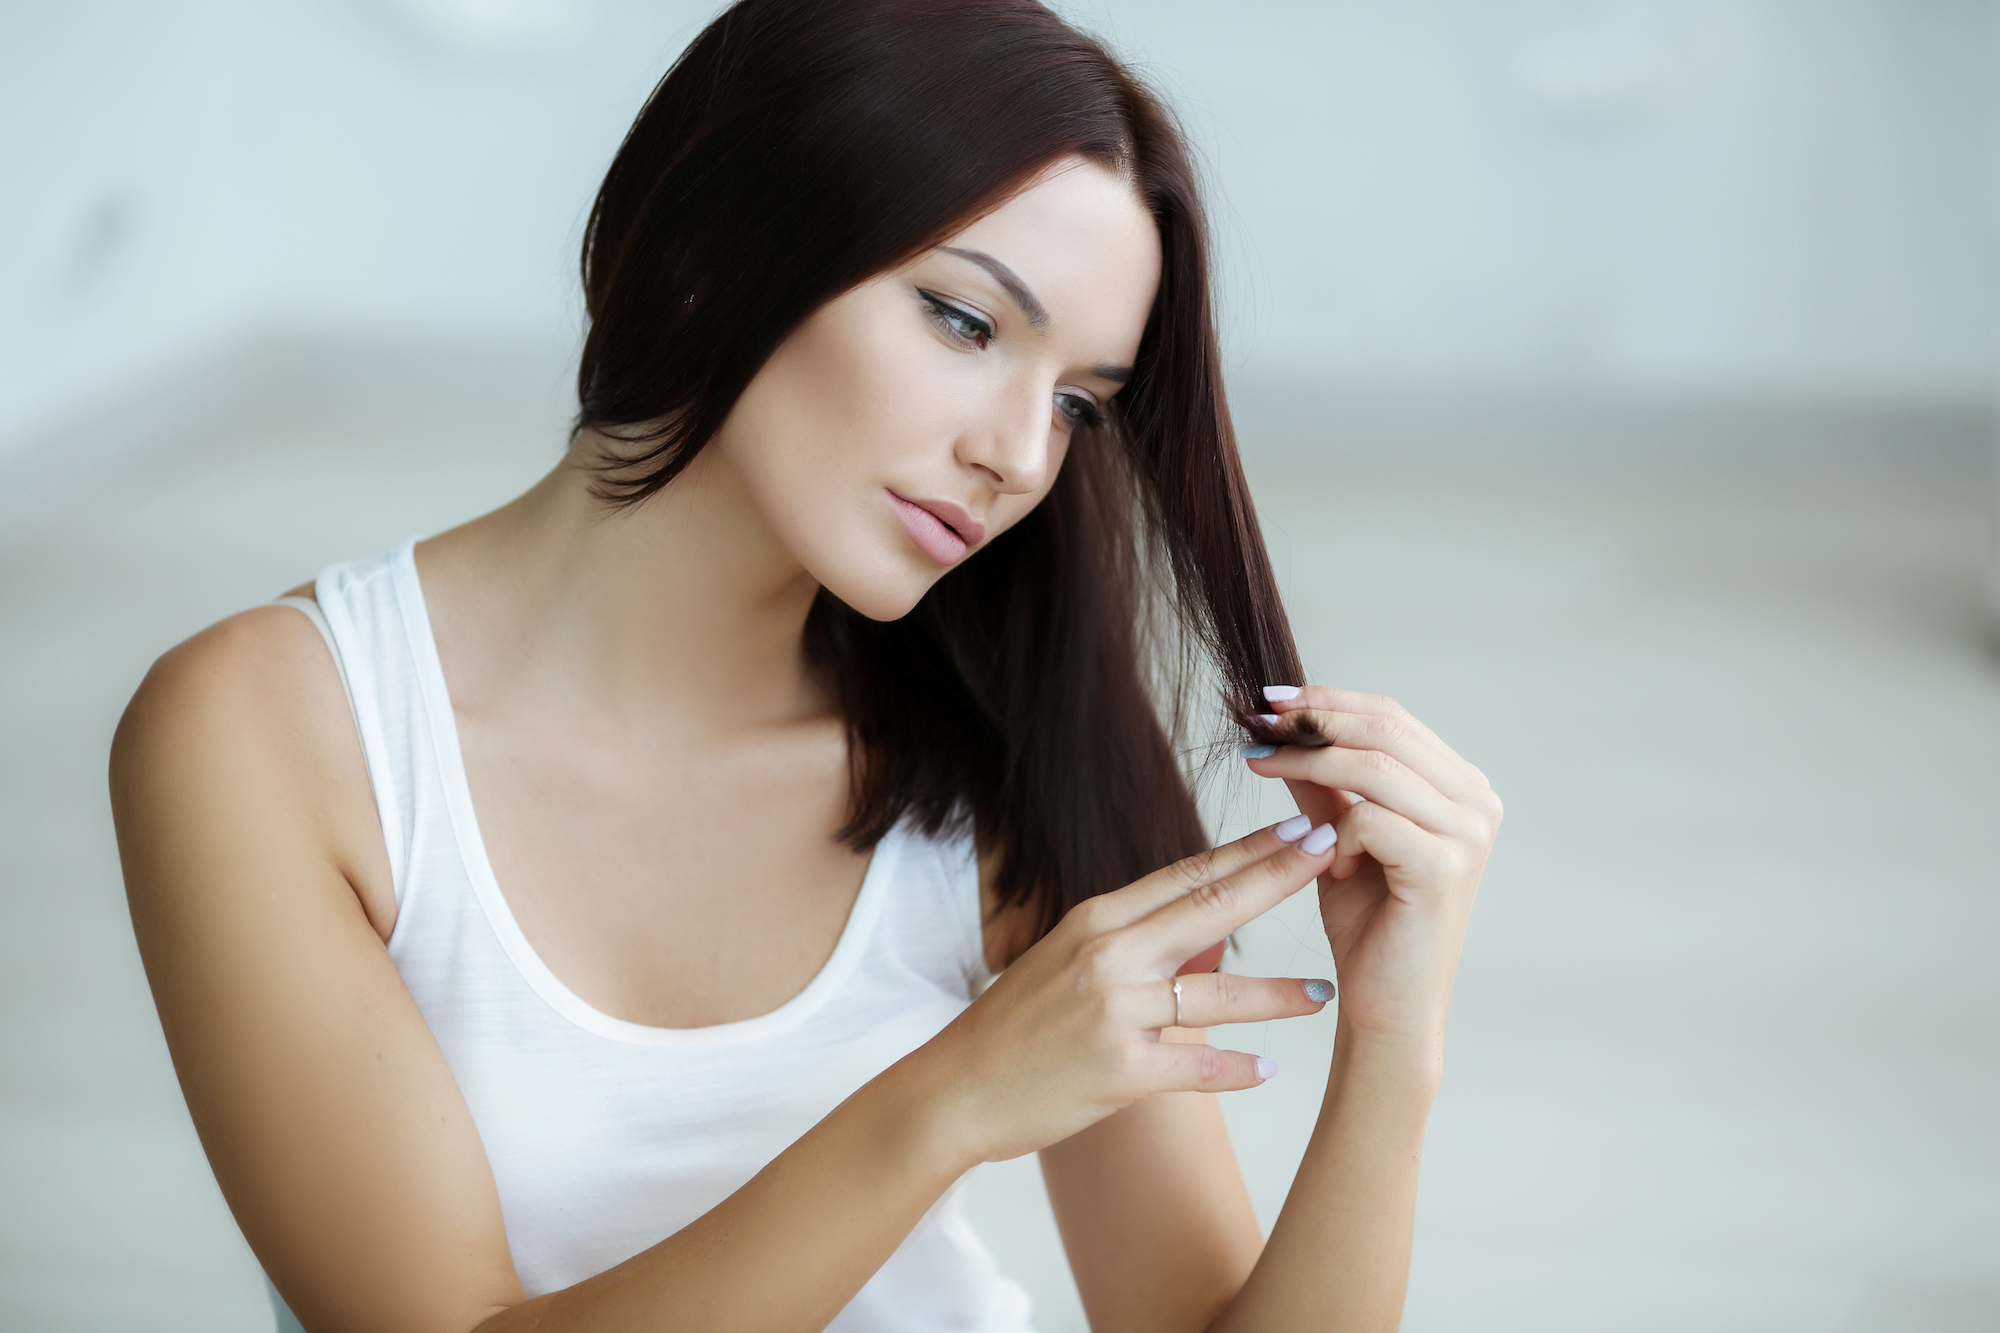 Specialists Name the Most Common Beauty Mistakes WeDon't Stop Making